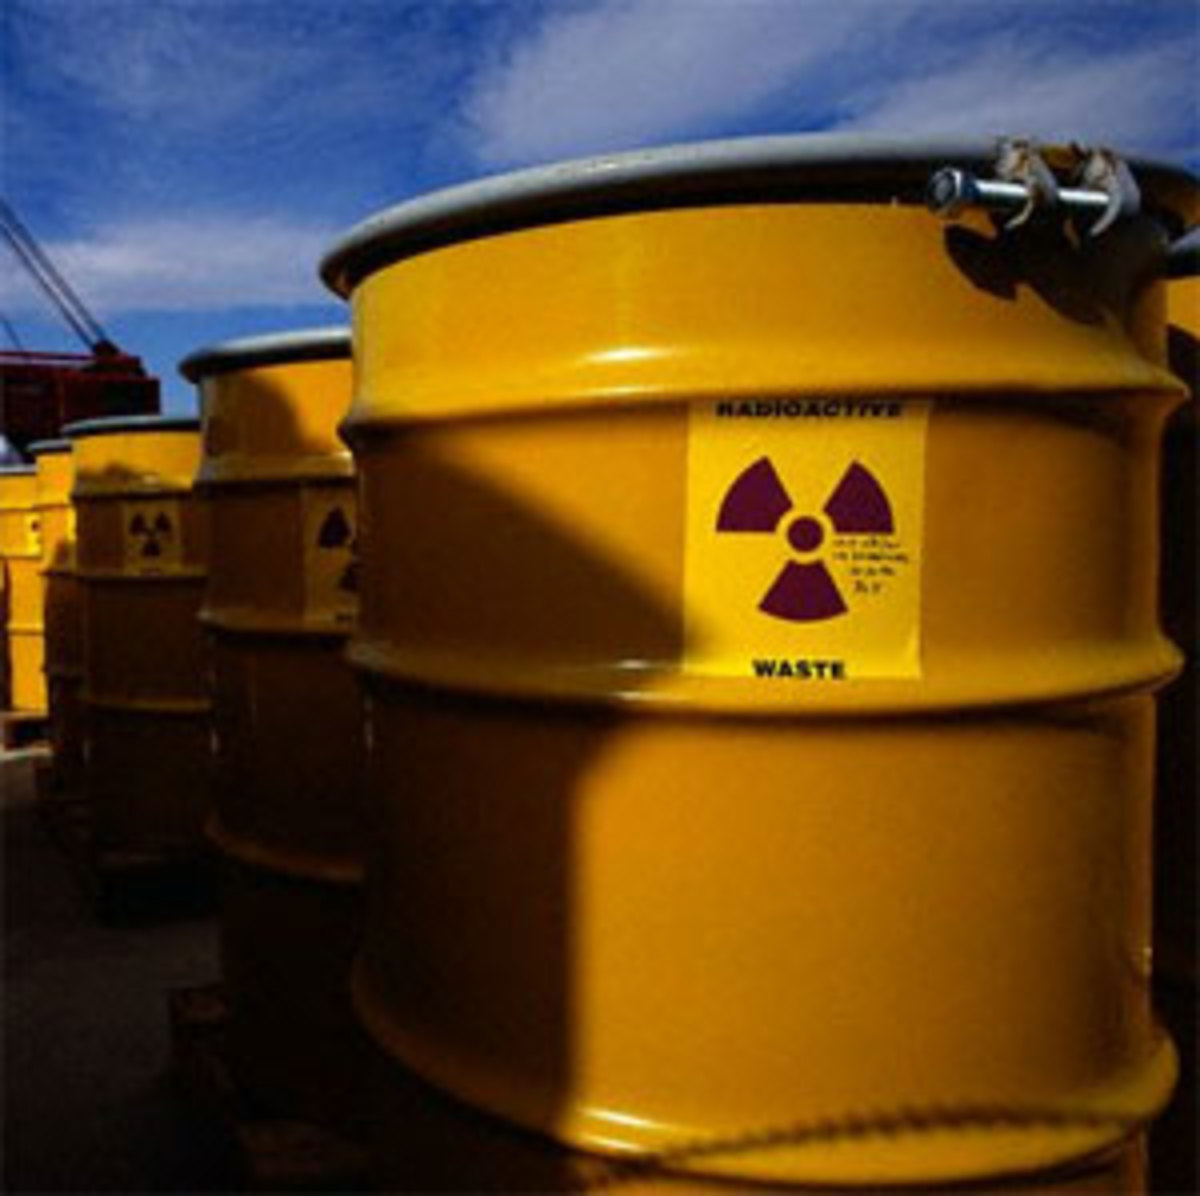 Storage of Radioactive Waste in steel containers